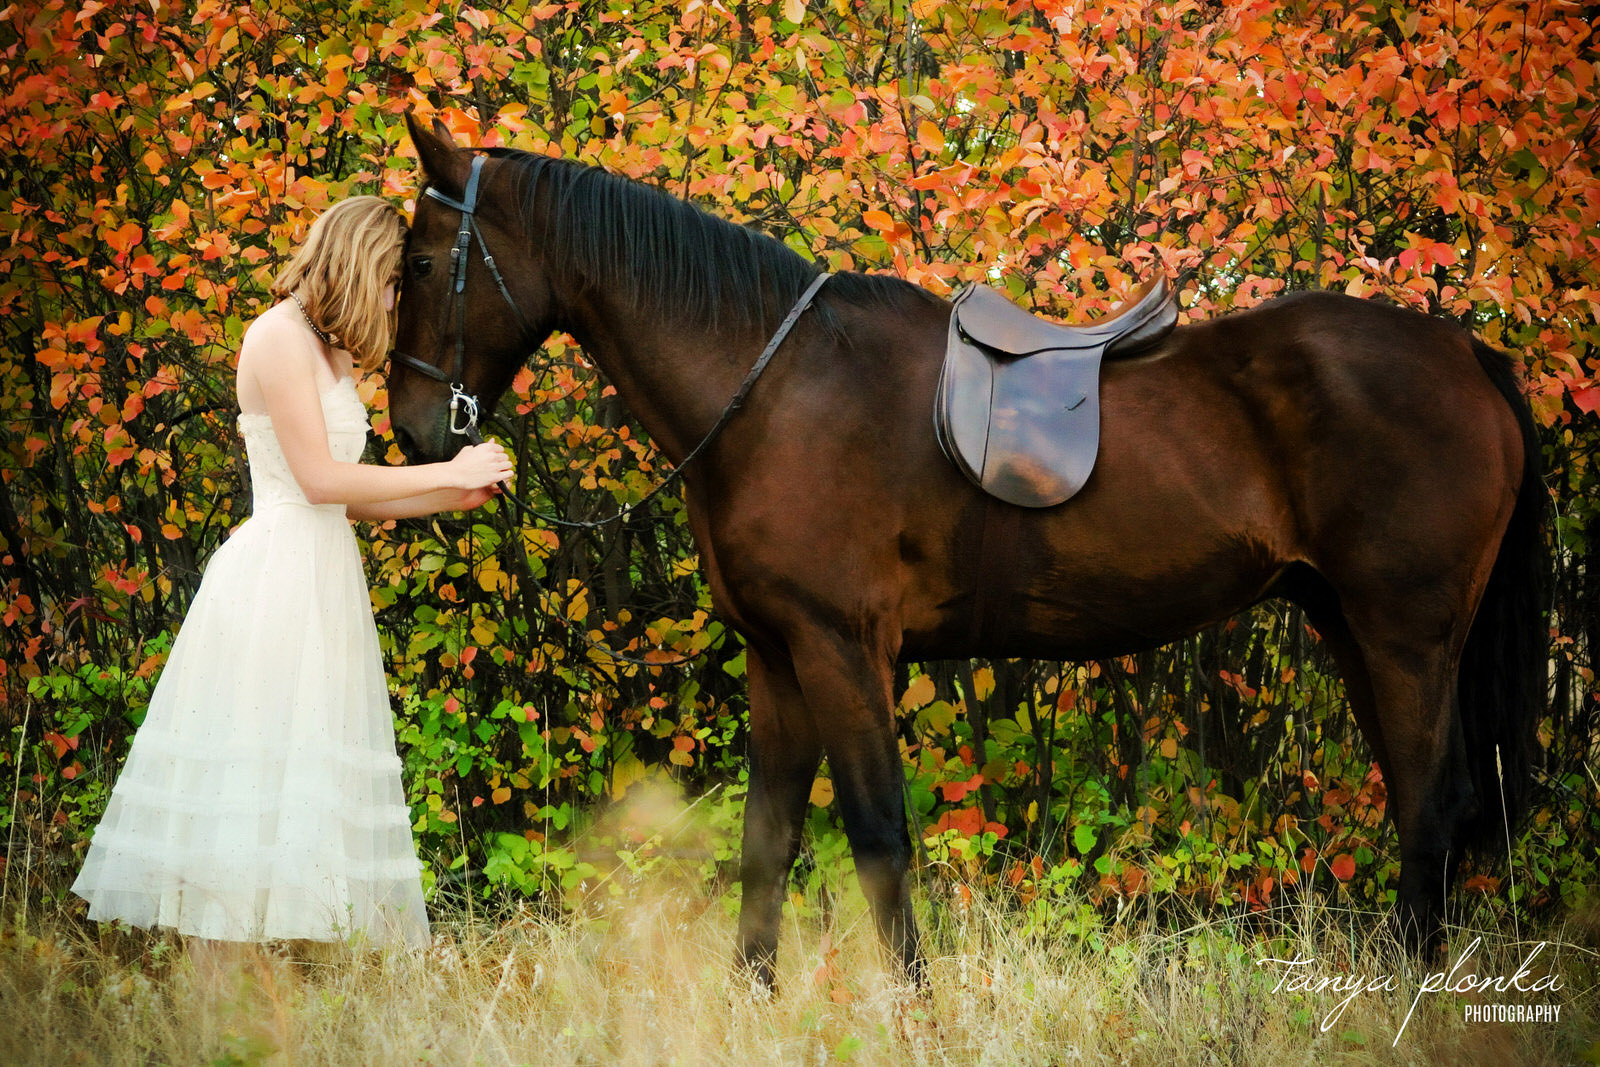 in front of orange leaves, woman in white dress stands forehead to forehead with brown horse